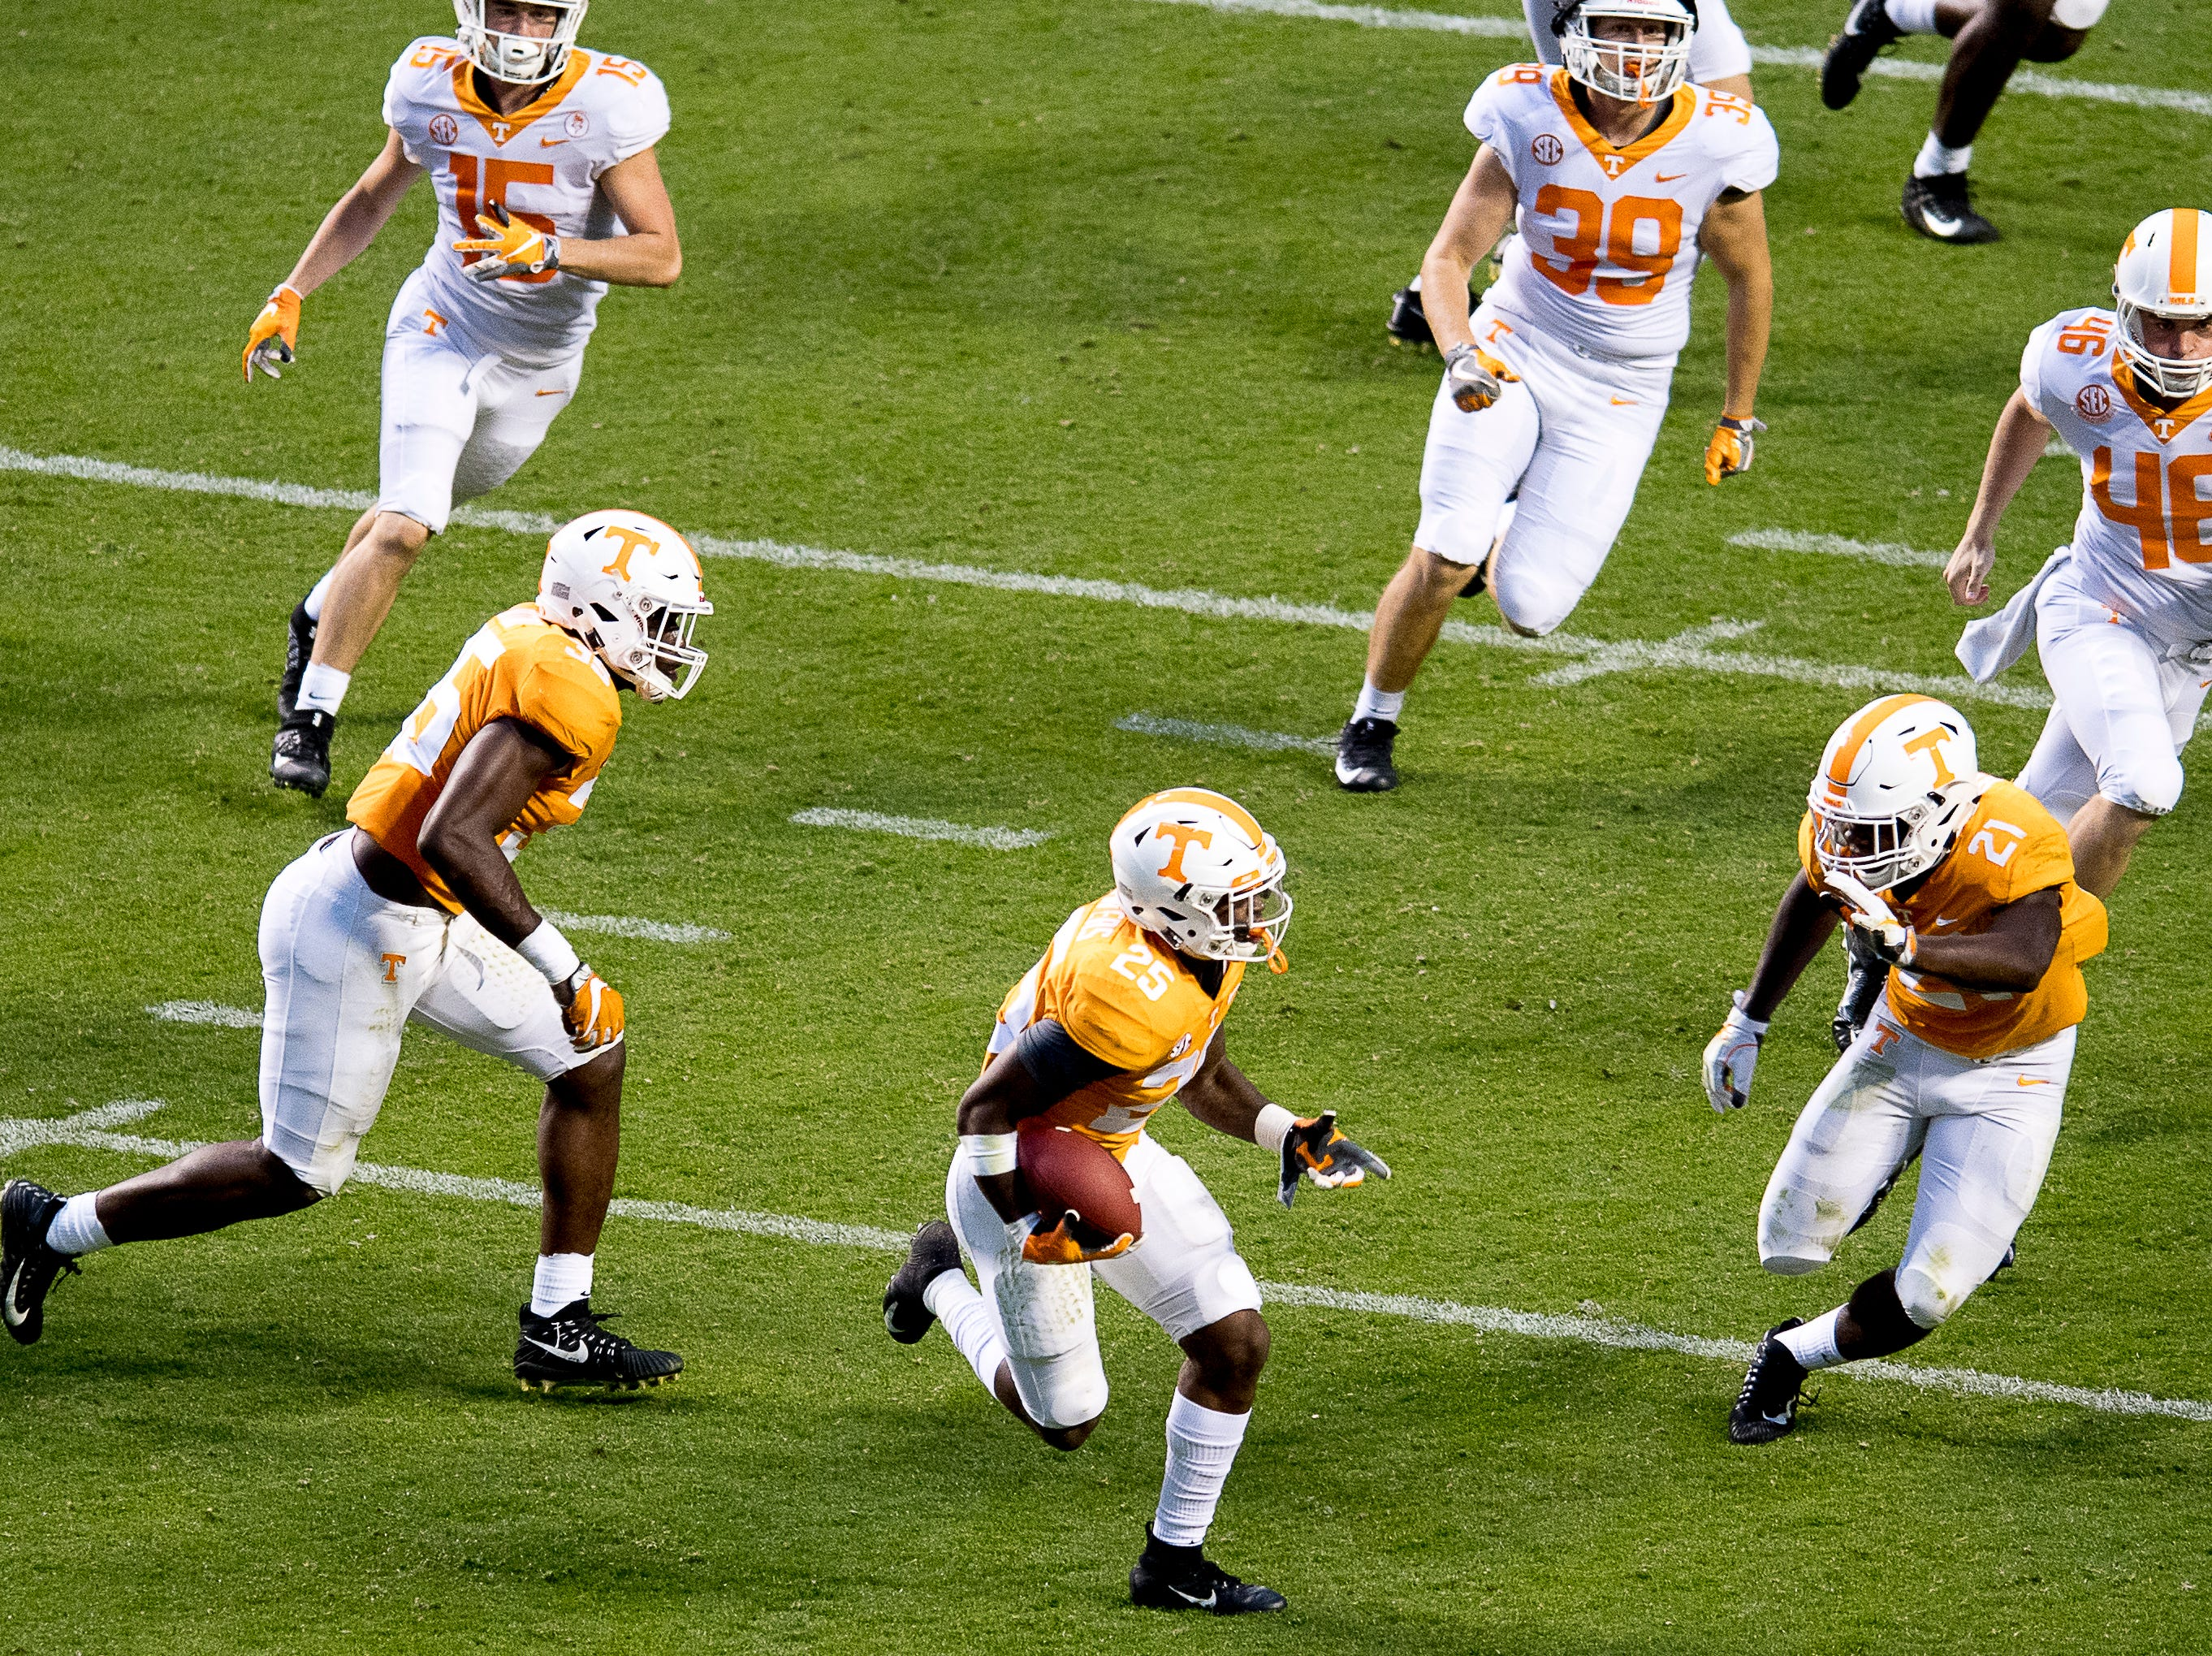 Tennessee defensive back Trevon Flowers (25) runs the ball down the field during the Tennessee Spring Game at Neyland Stadium in Knoxville, Tennessee on Saturday, April 13, 2019.